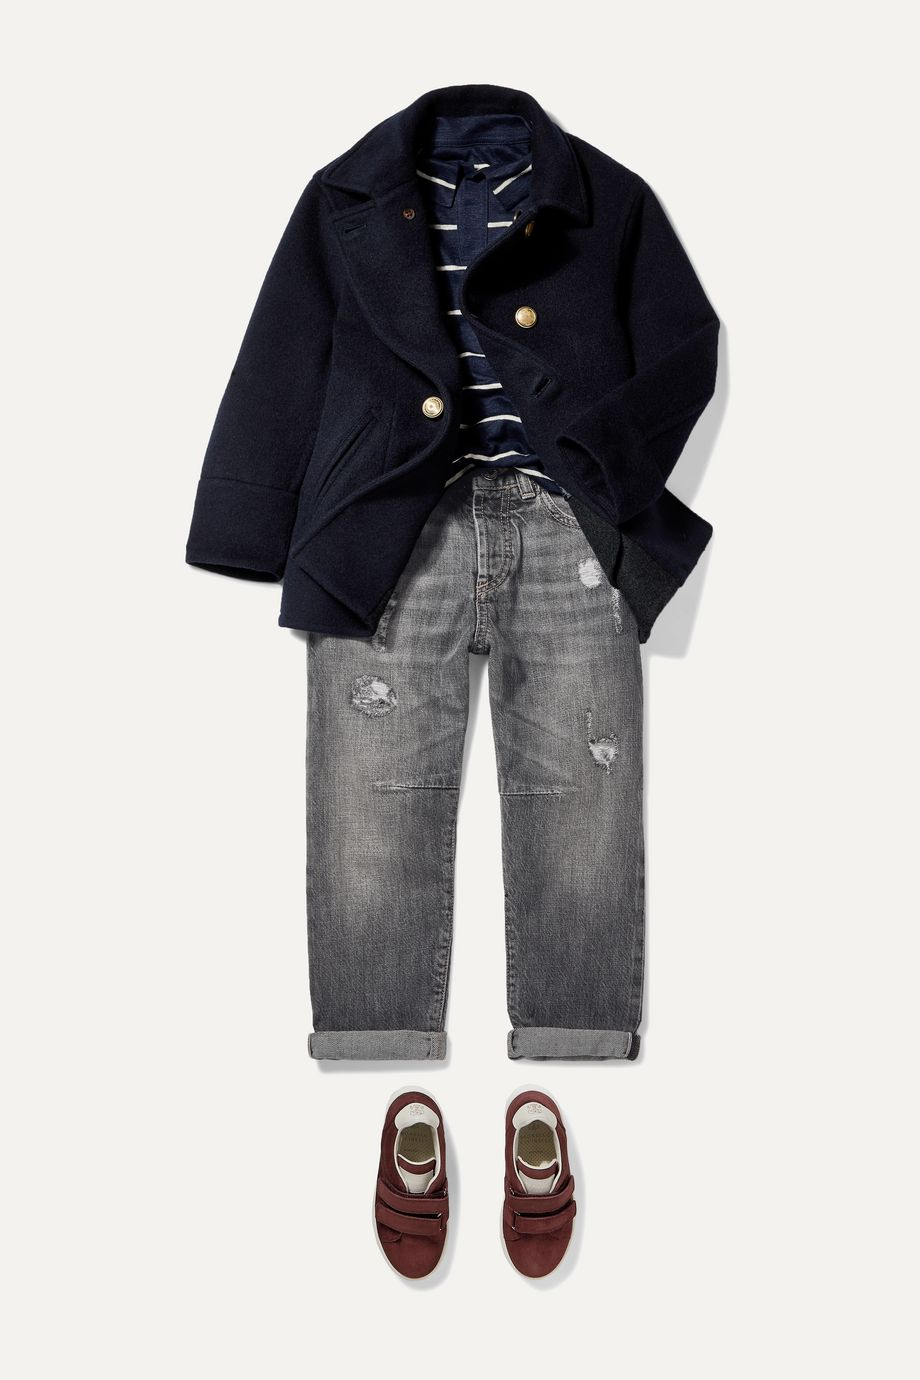 Brunello Cucinelli Kids Ages 4 - 6 distressed denim jeans